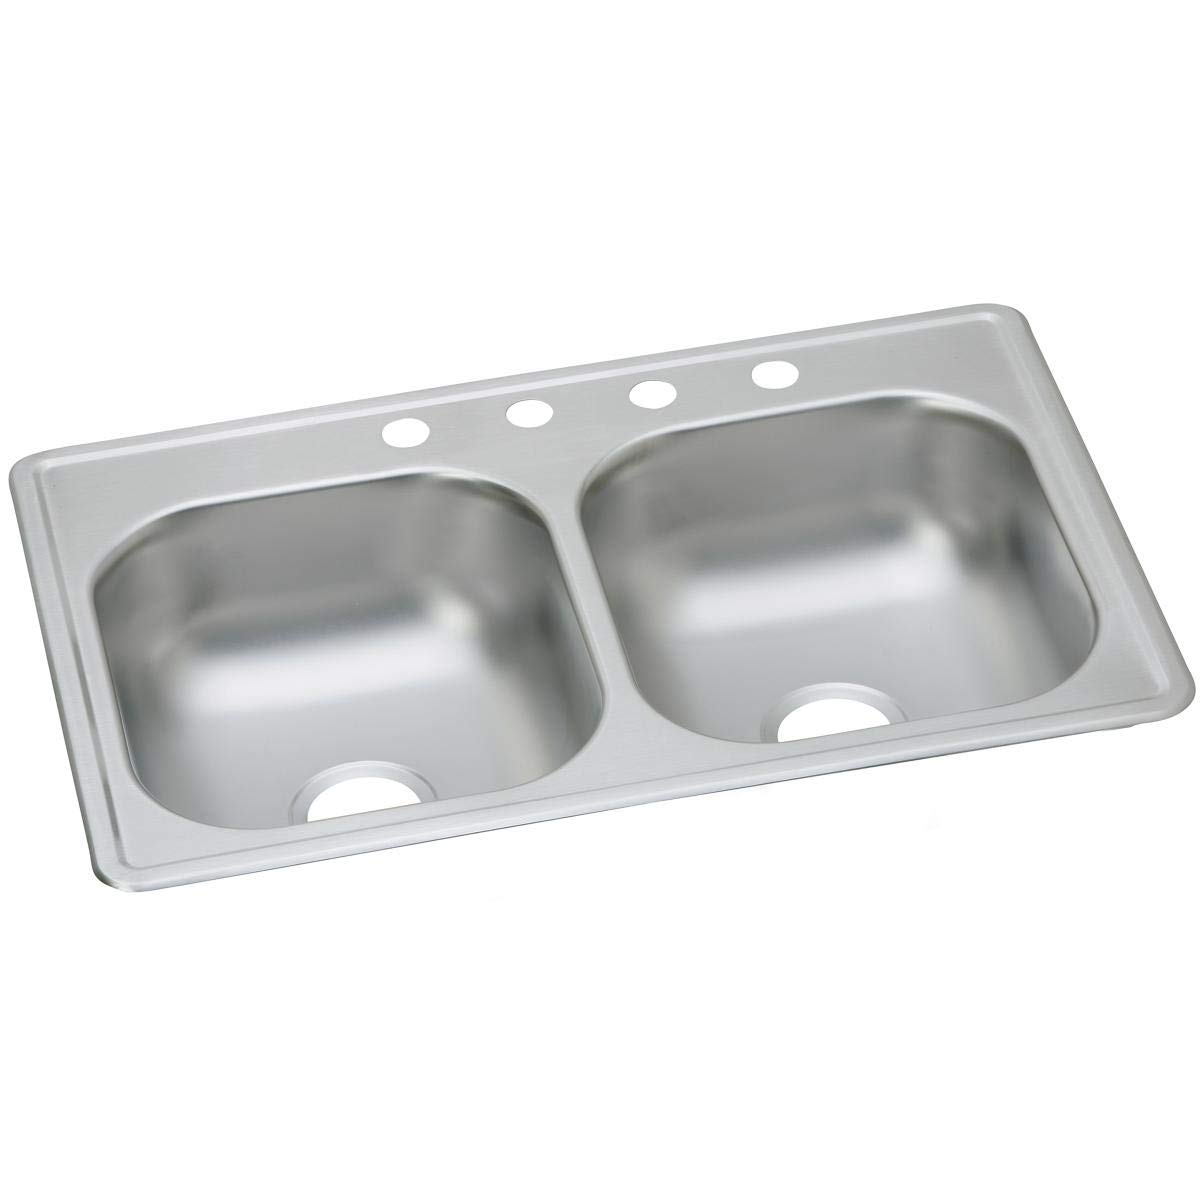 Dayton DSE233194 Equal Double Bowl Drop-in Stainless Steel Sink